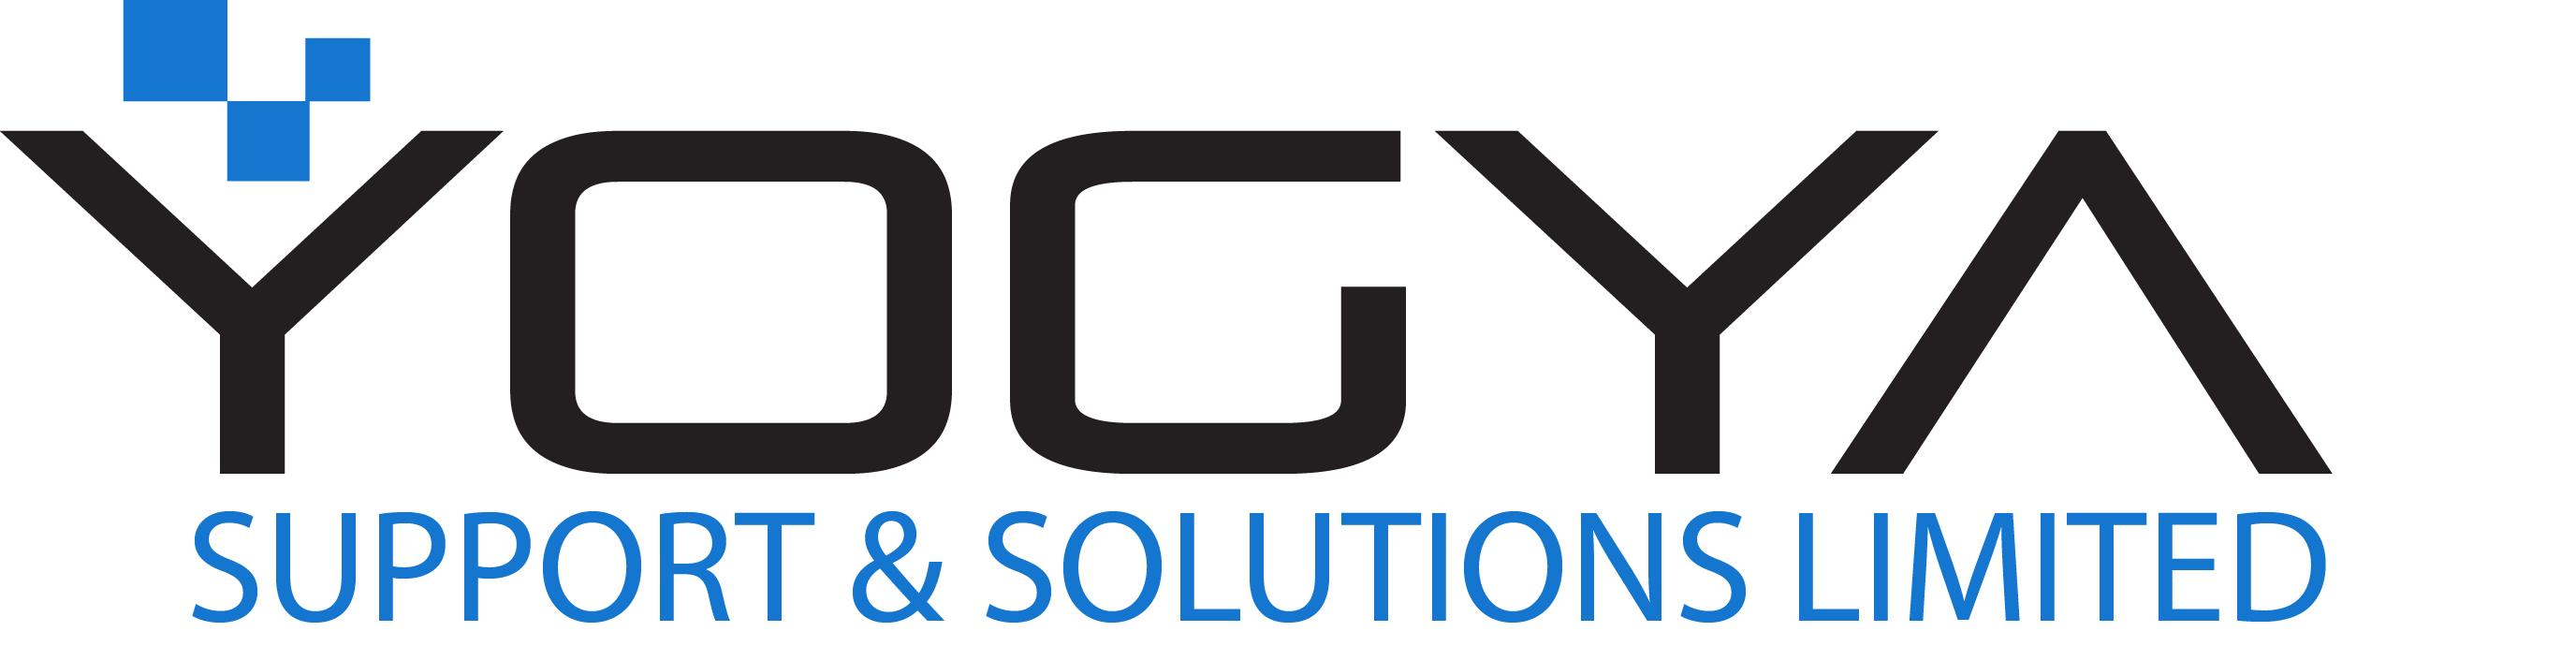 Yogya Support And Solutions Limited